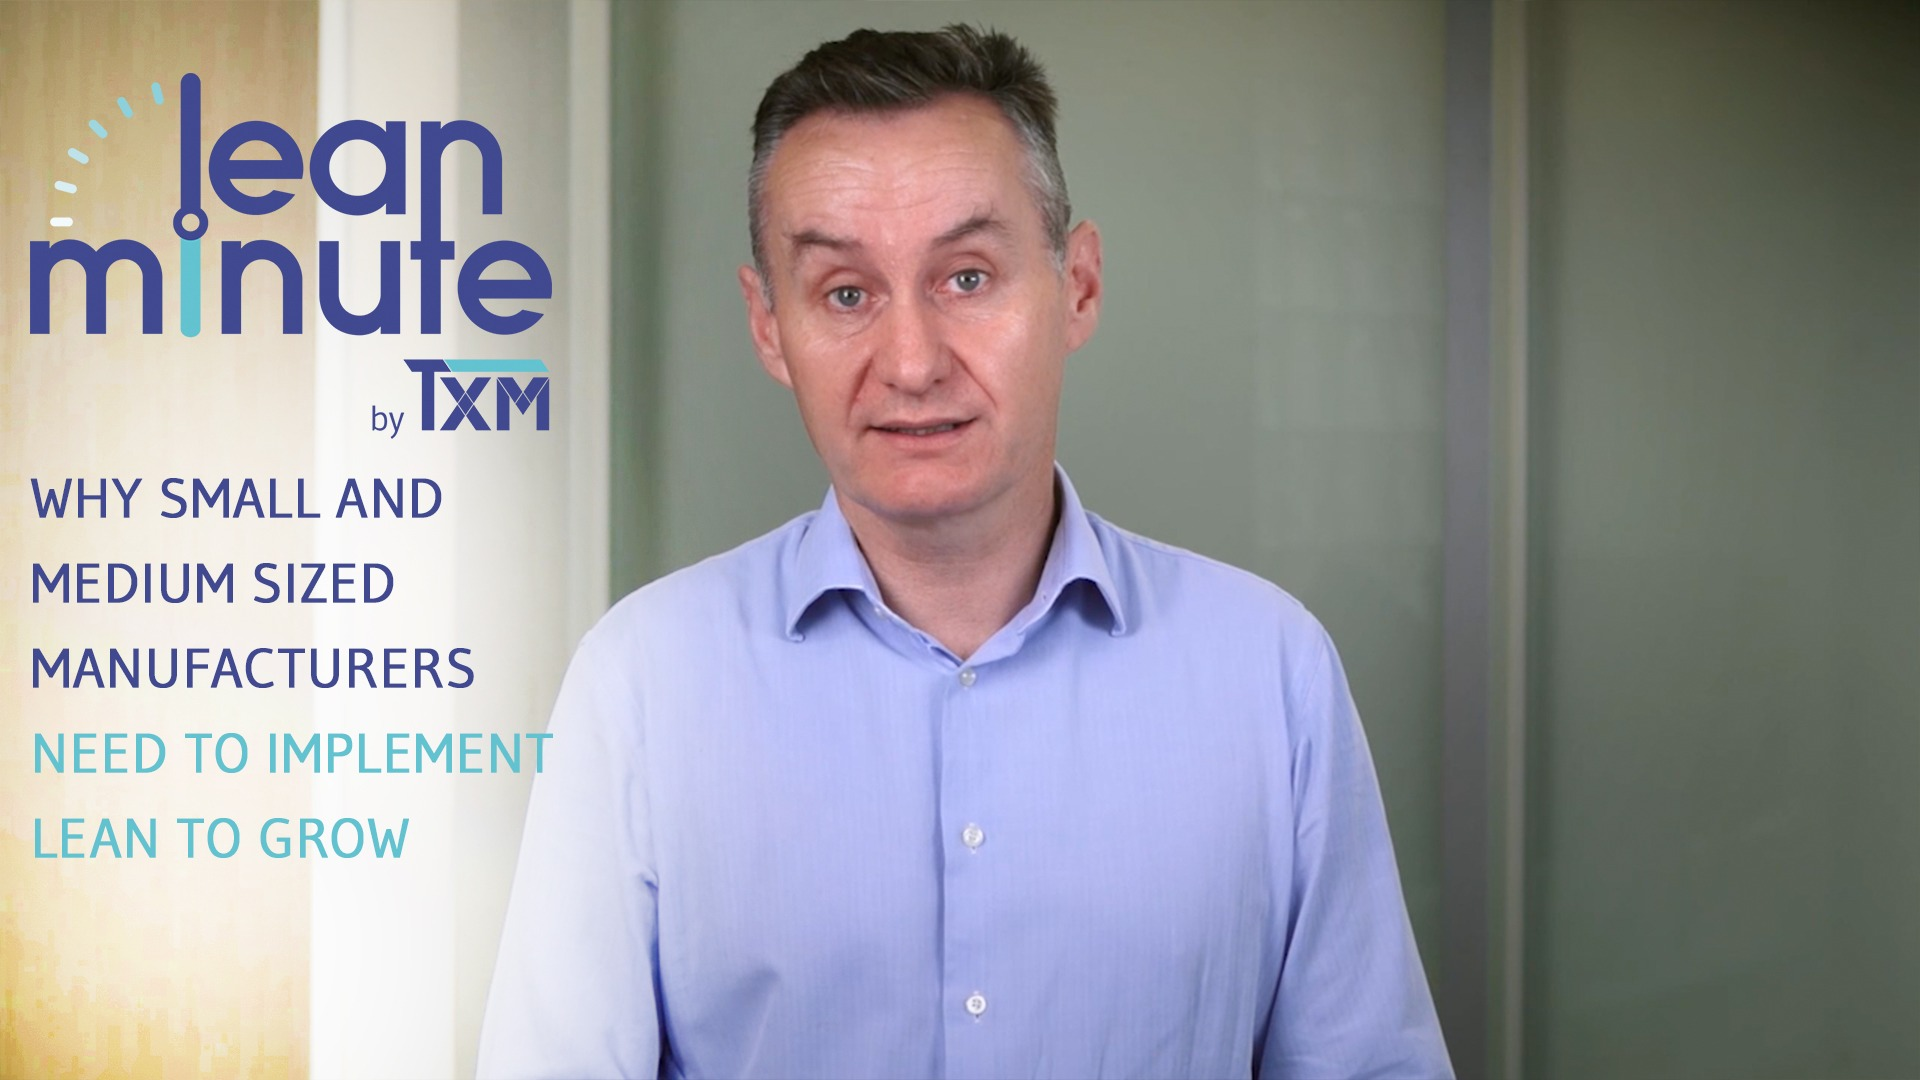 TXM Lean Video – Why Small and Medium Sized Businesses Need to Implement Lean To Grow